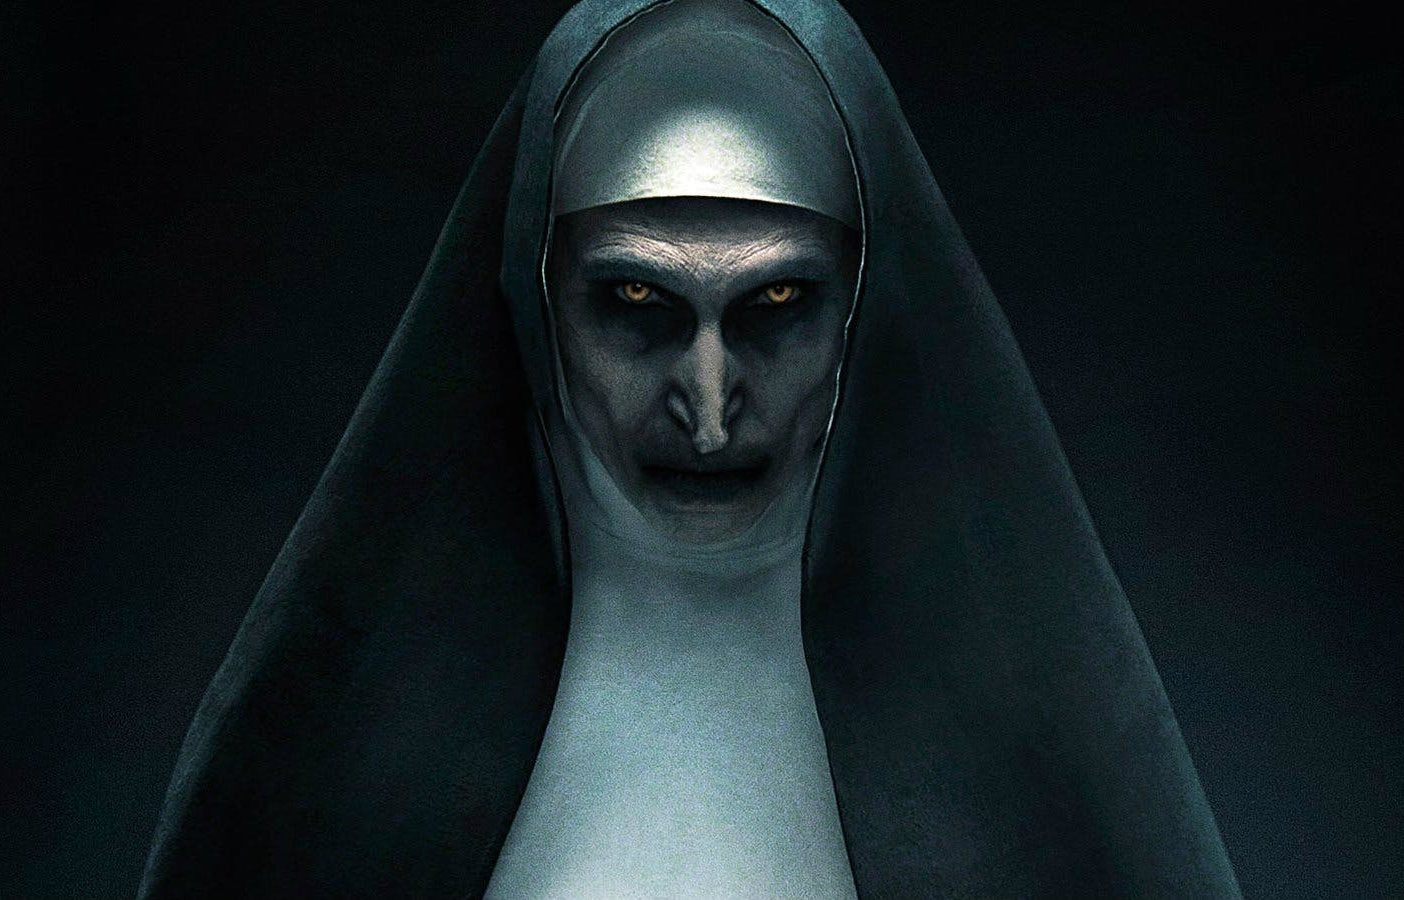 First Trailer For The Nun Comes With A Terrifying Warning The Nun movie 2018 1404x900